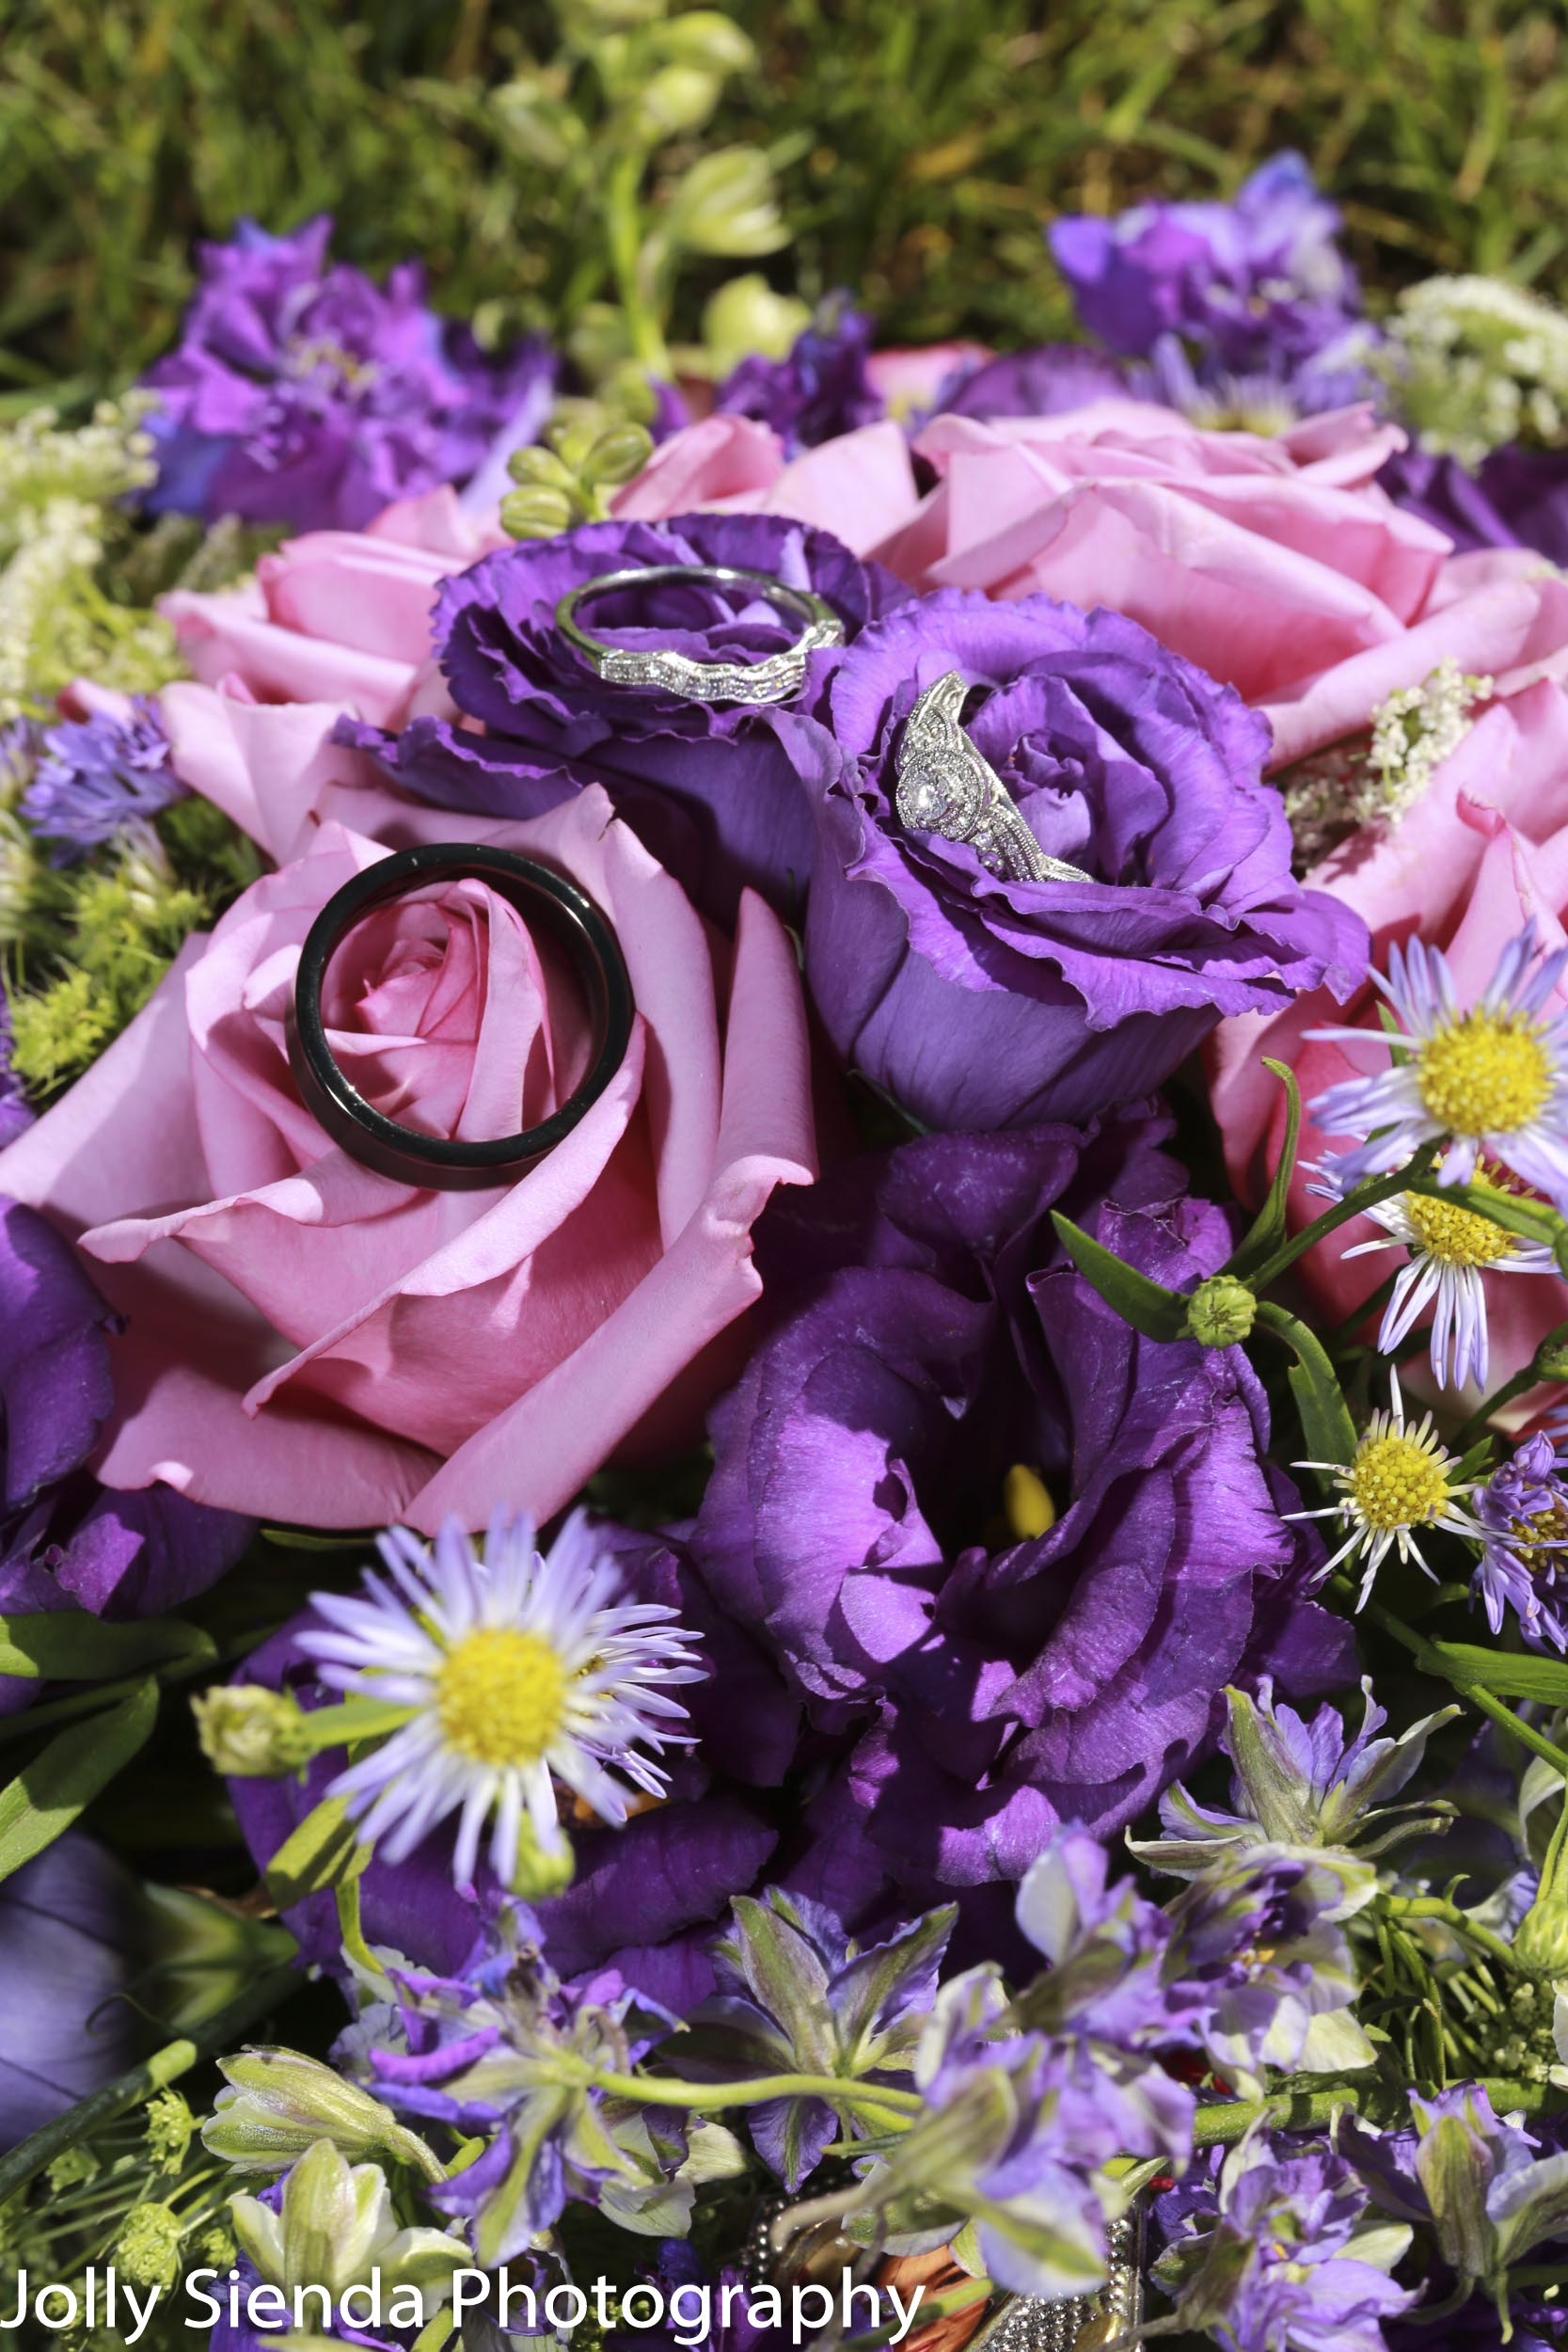 Wedding rings and bridal bouquet wedding photography